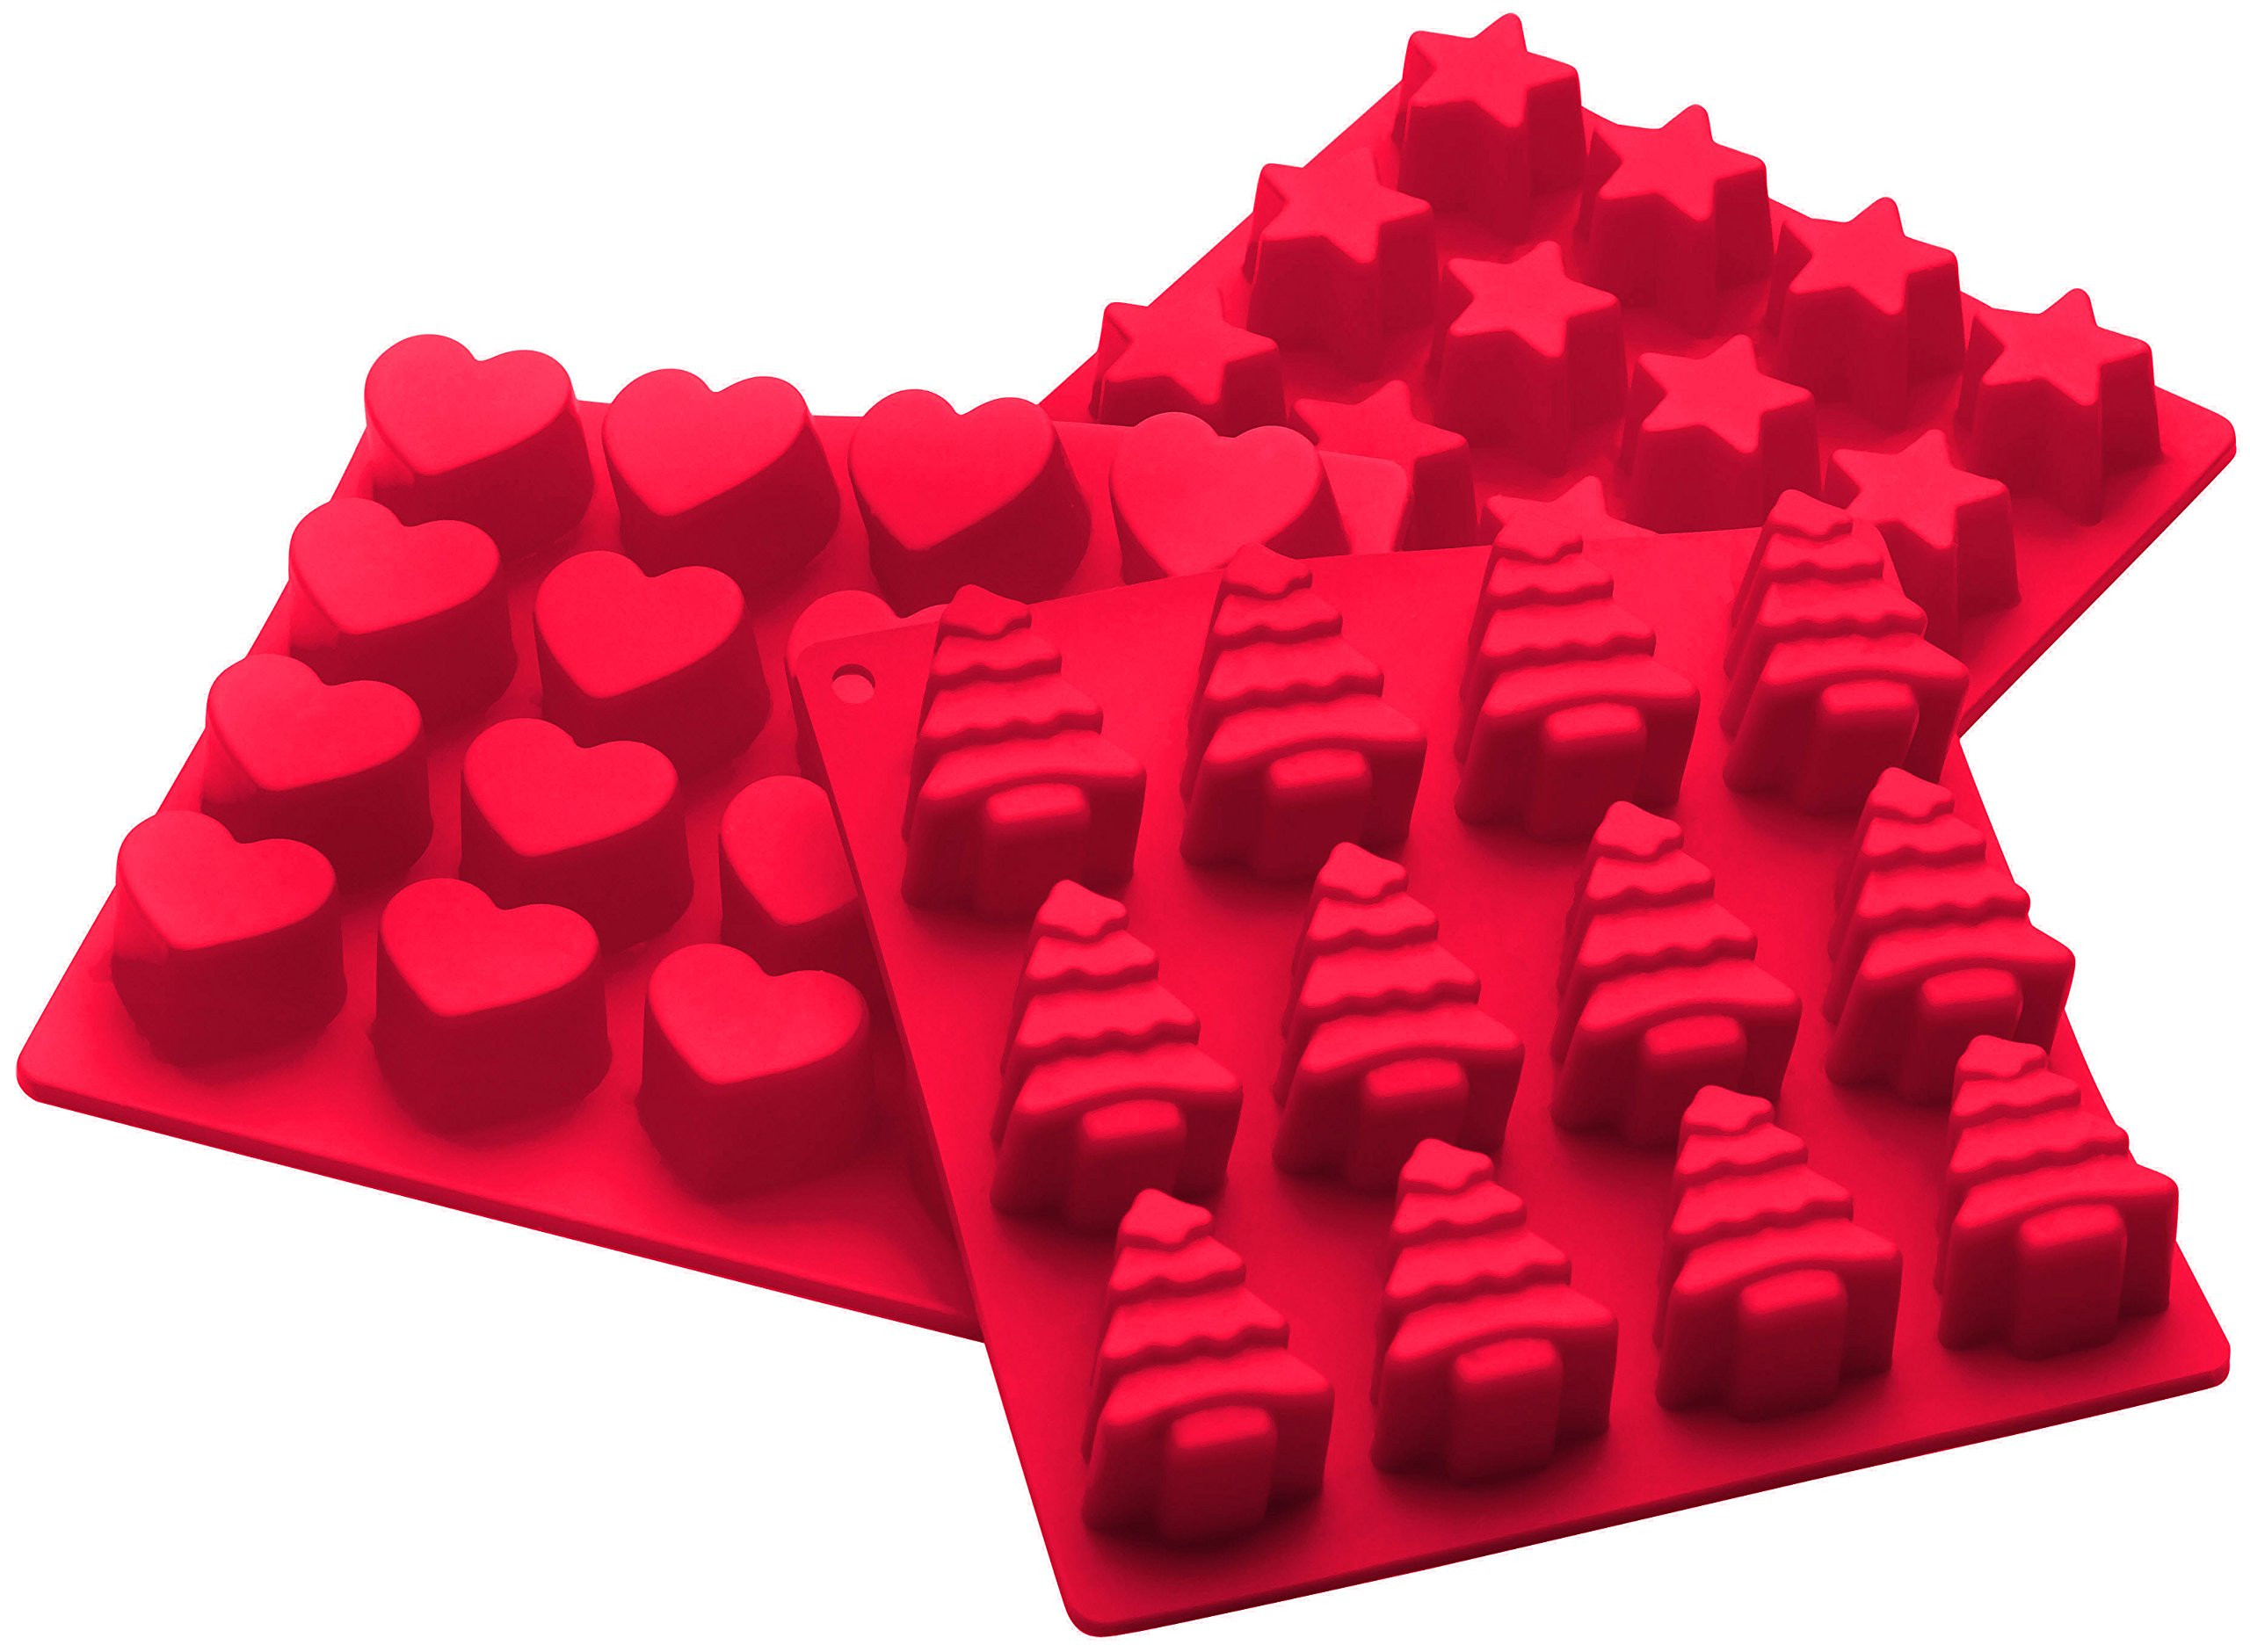 Silicone Christmas Candy Molds  StarPack Premium Silicone Holiday Candy Molds 3 Pack